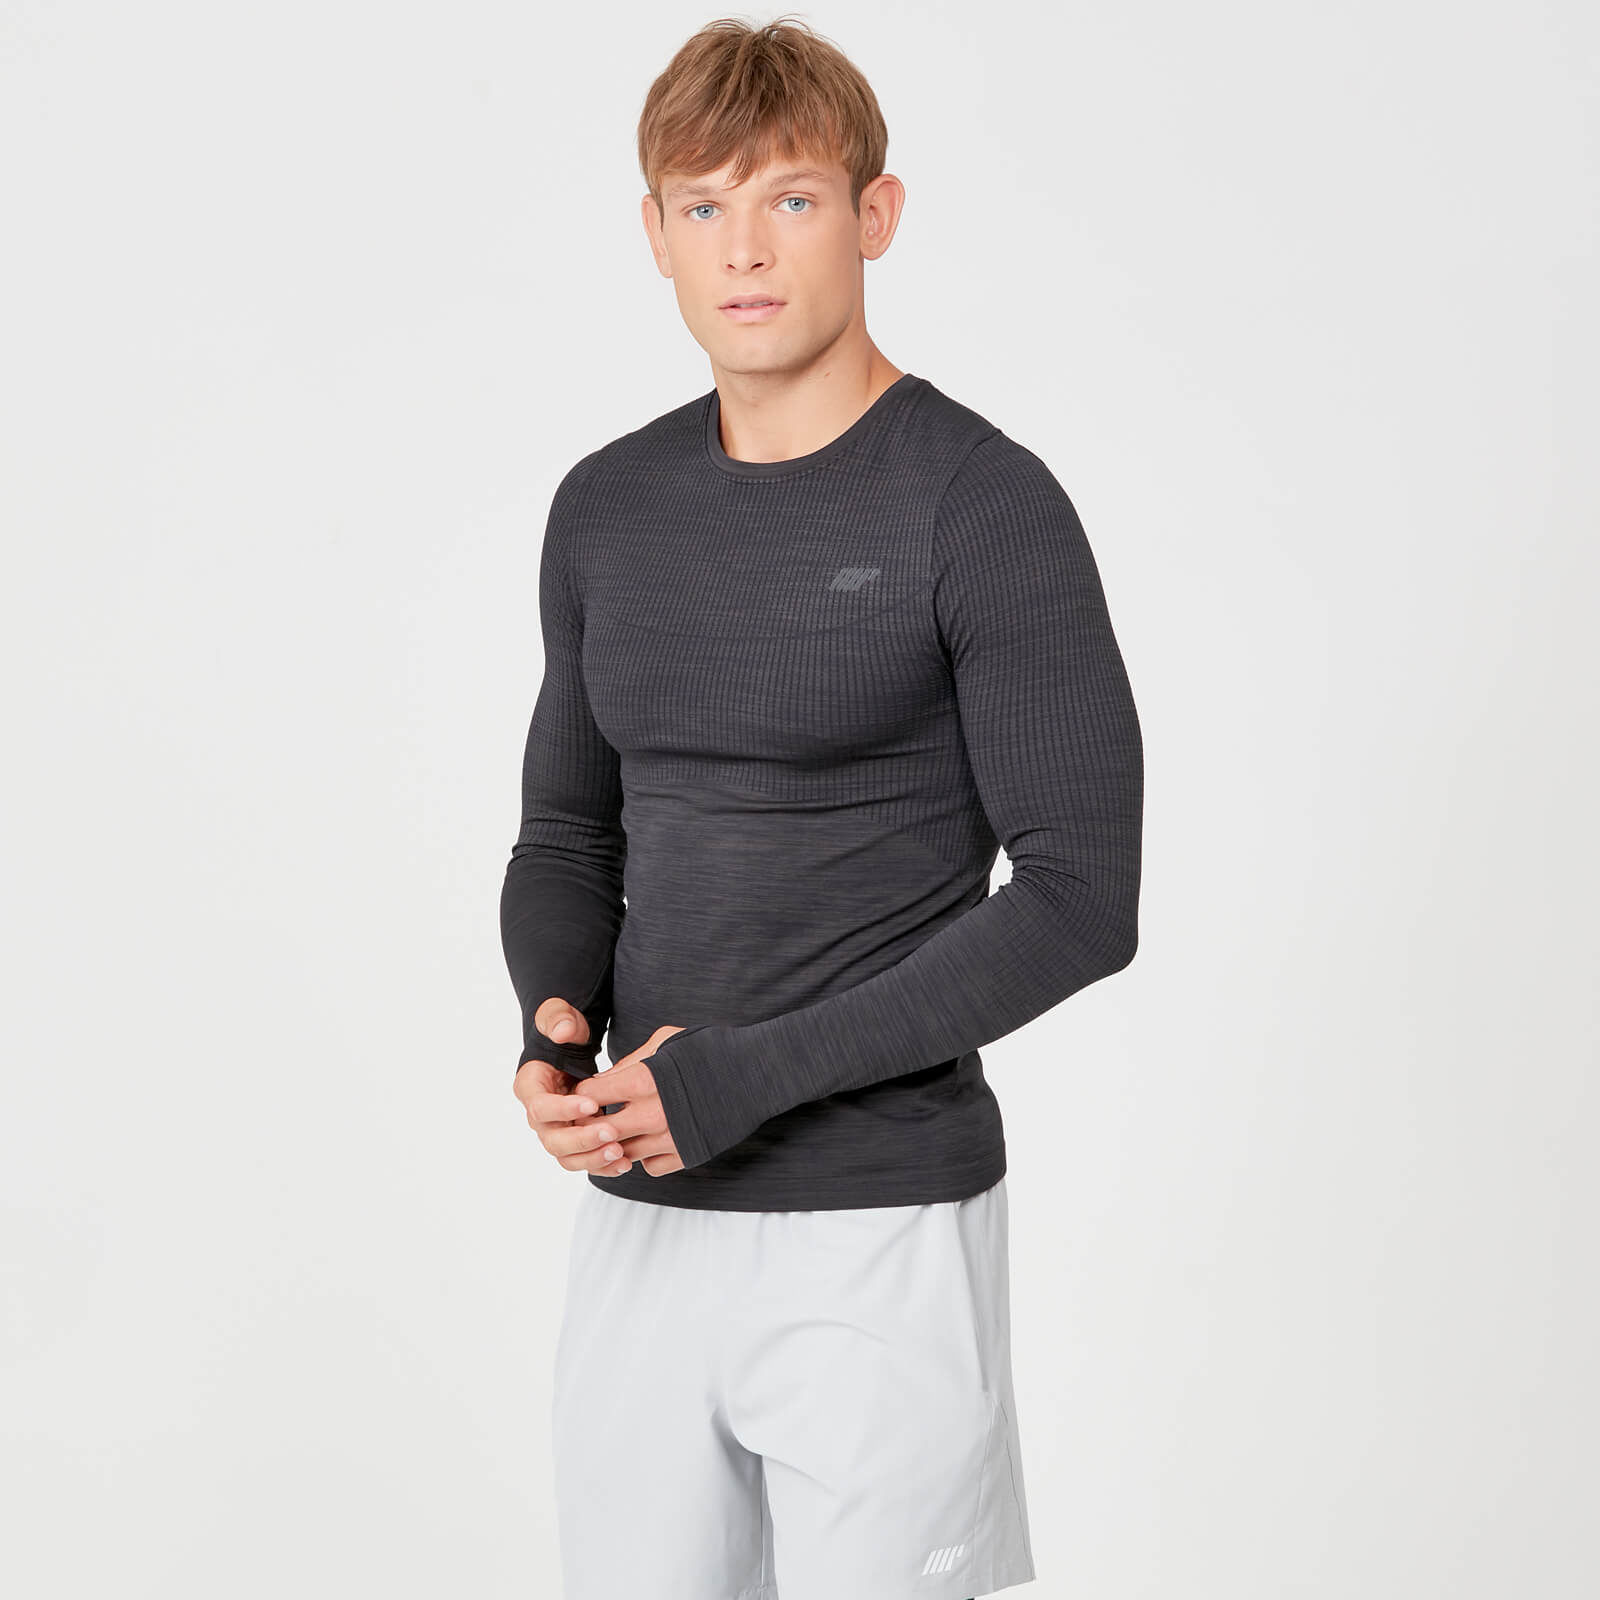 Sculpt Seamless Long-Sleeve T-Shirt